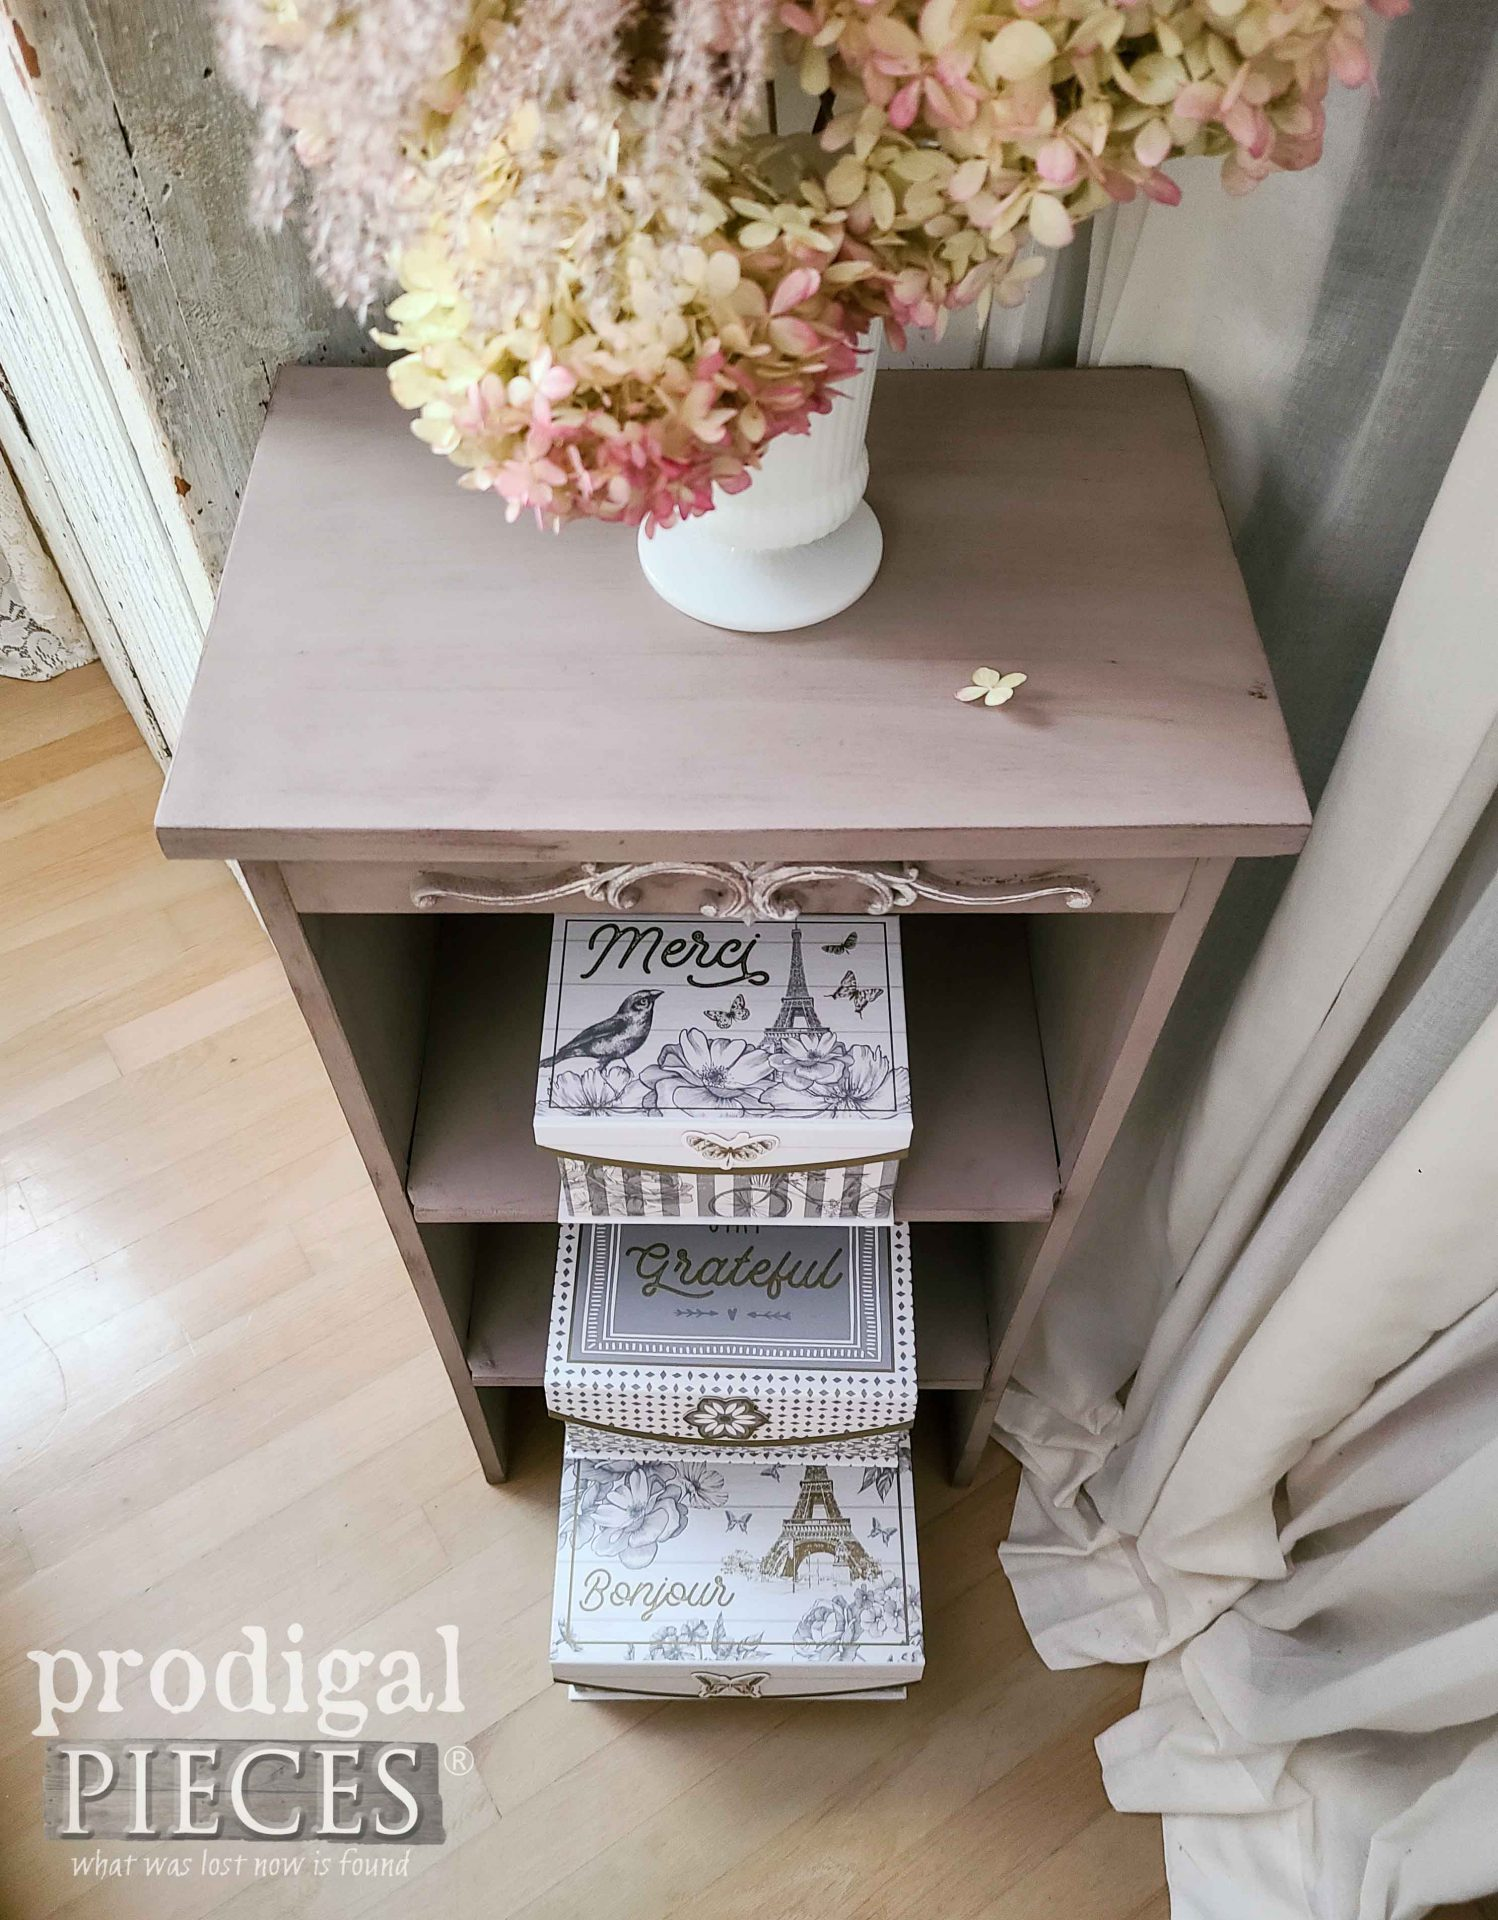 Top View of Shelf Upcycled from Broken Furniture by Larissa of Prodigal Pieces | prodigalpieces.com #prodigalpieces #vintage #storage #home #homedecor